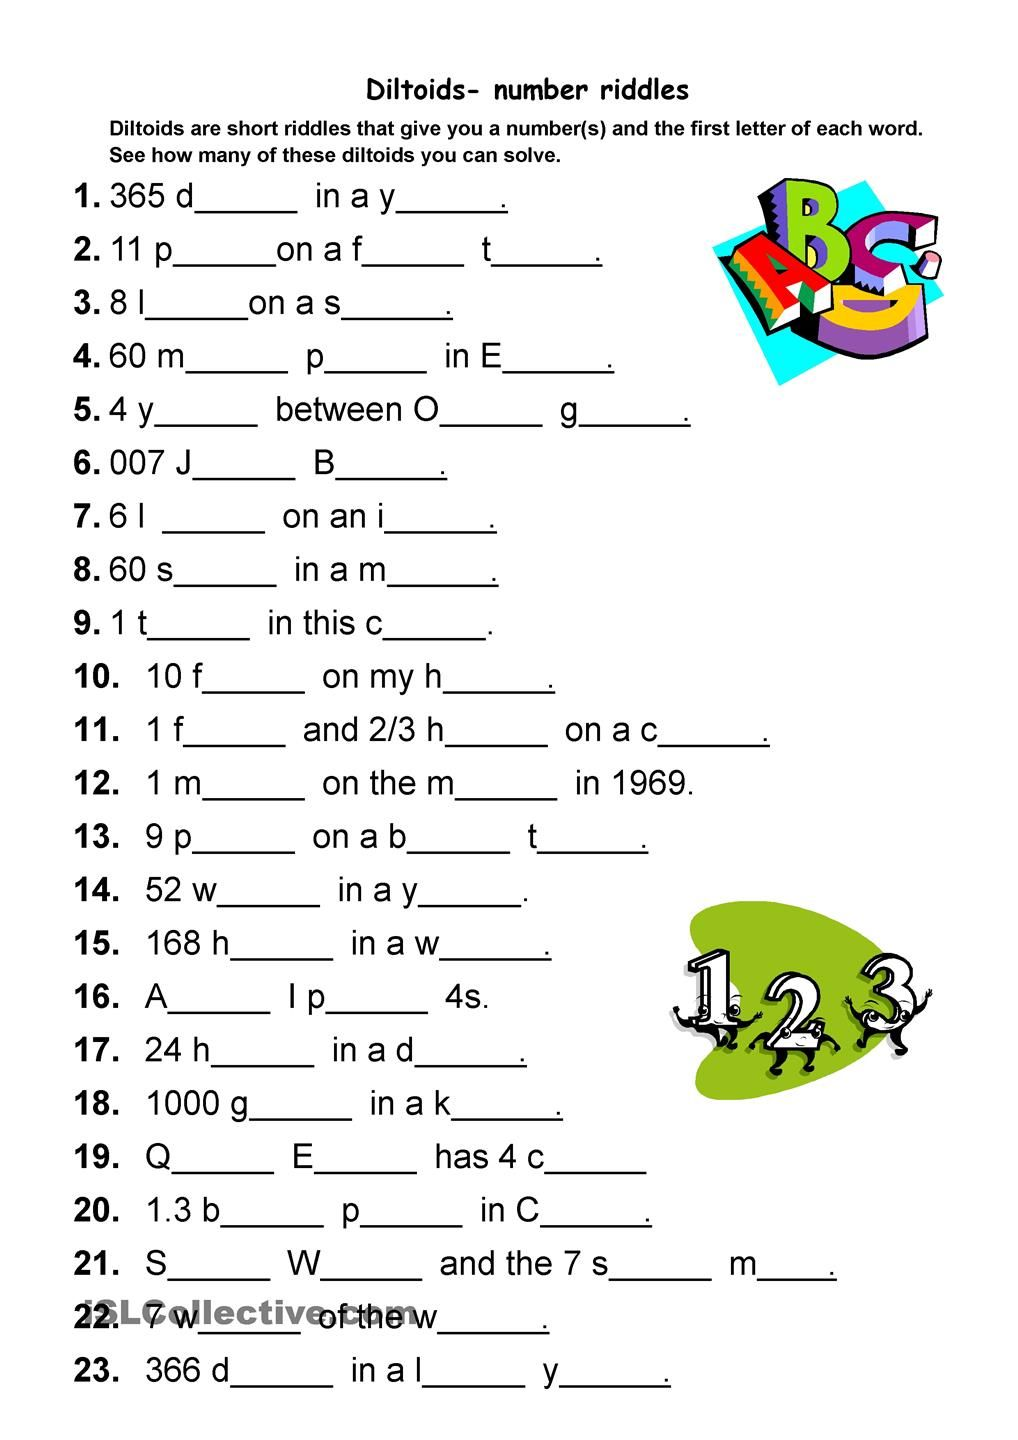 Diltoids NumberLetter Puzzles  Activities Riddles Quizzes